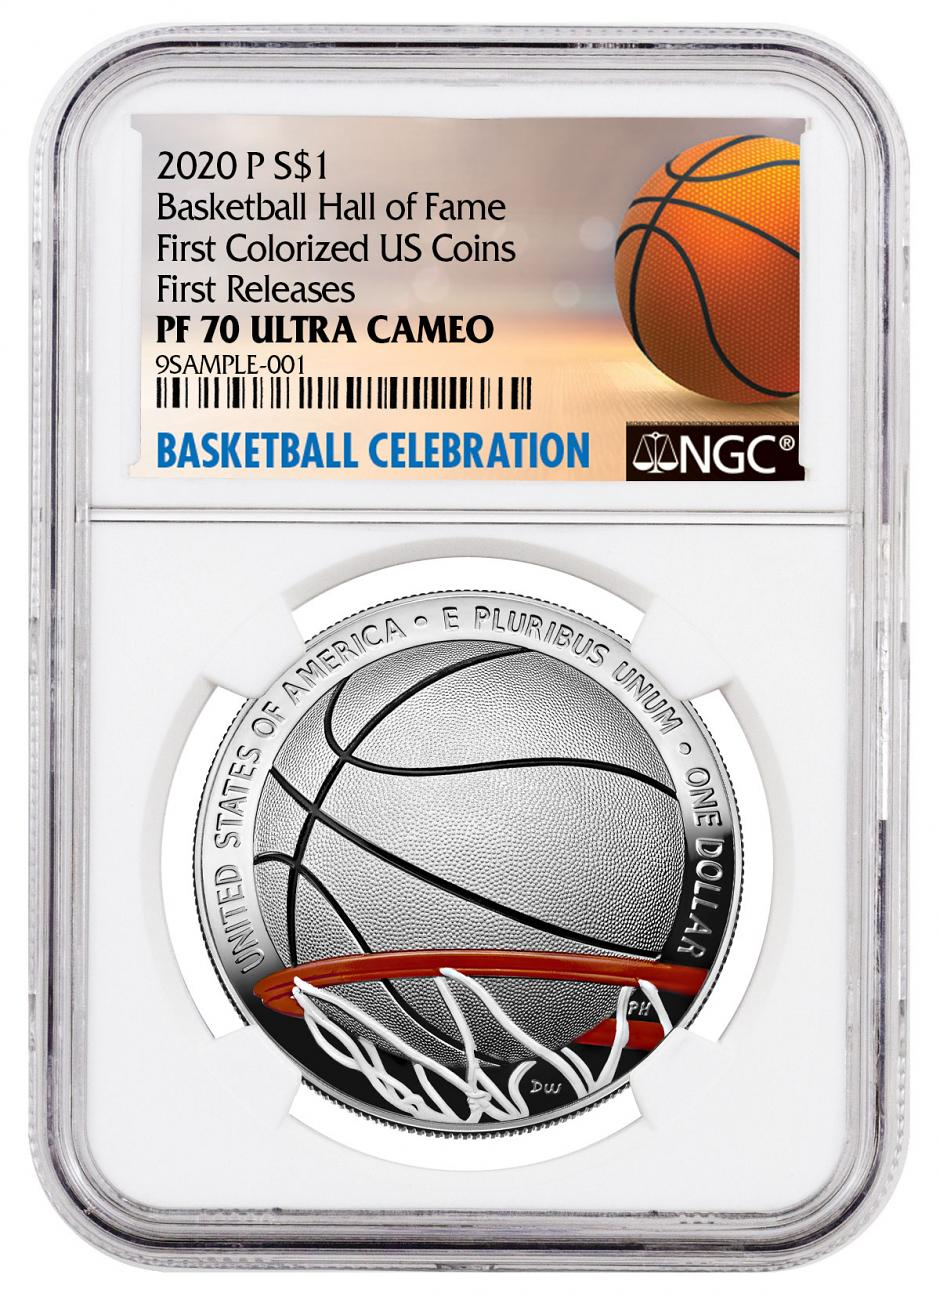 2020-P Basketball Hall of Fame Commemorative Silver Dollar Colorized Proof Coin NGC PF70 UC FR Basketball Celebration Label